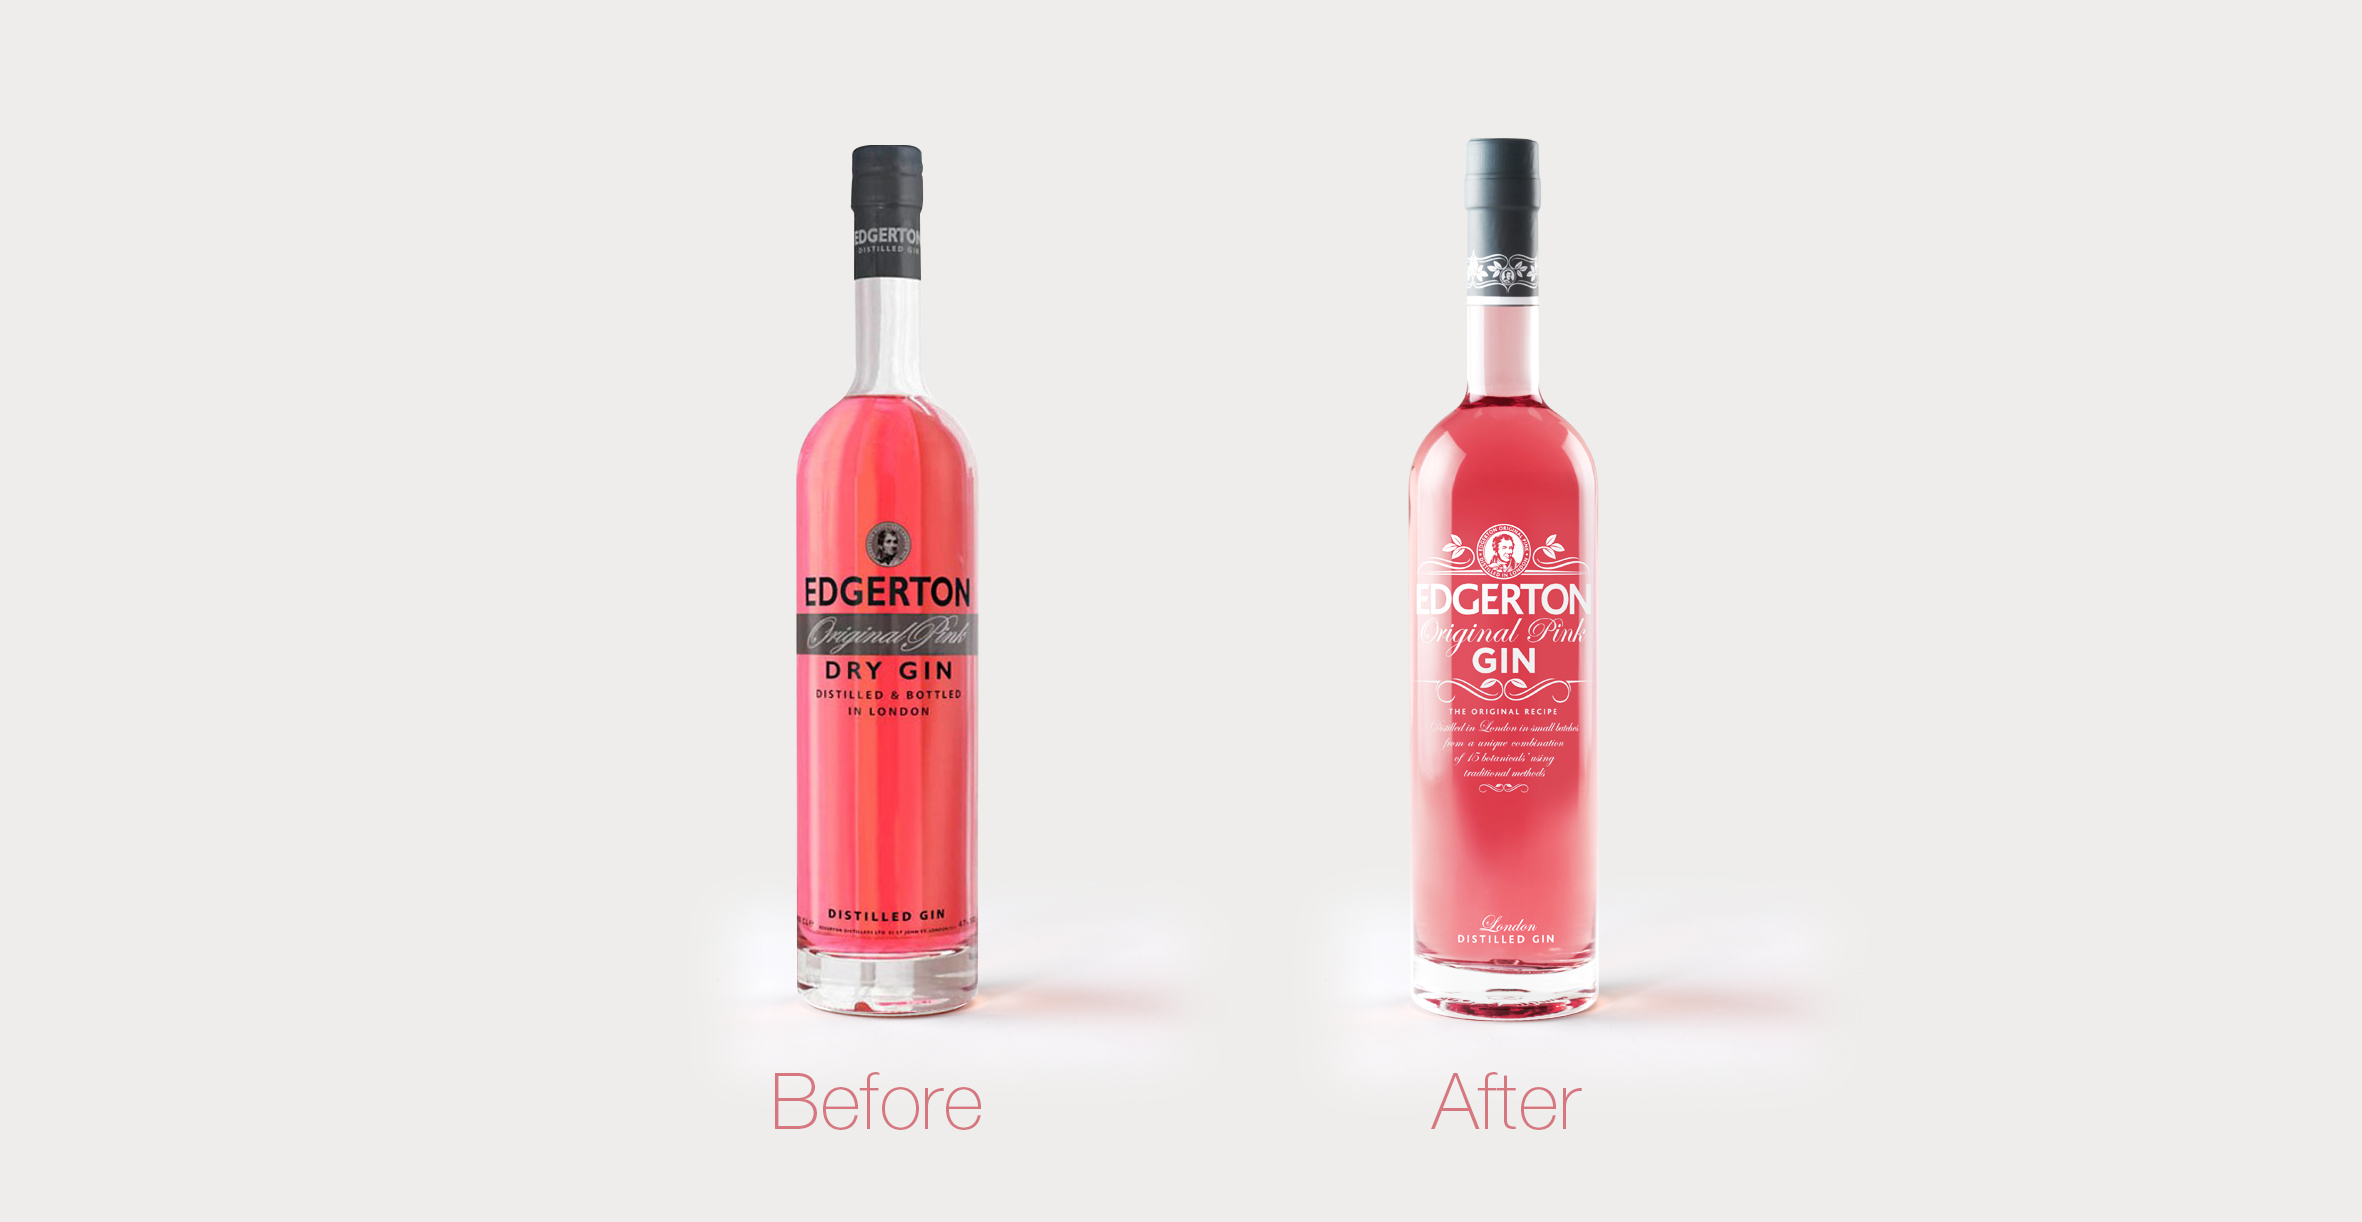 Edgerton Gin branding and packaging design before and after